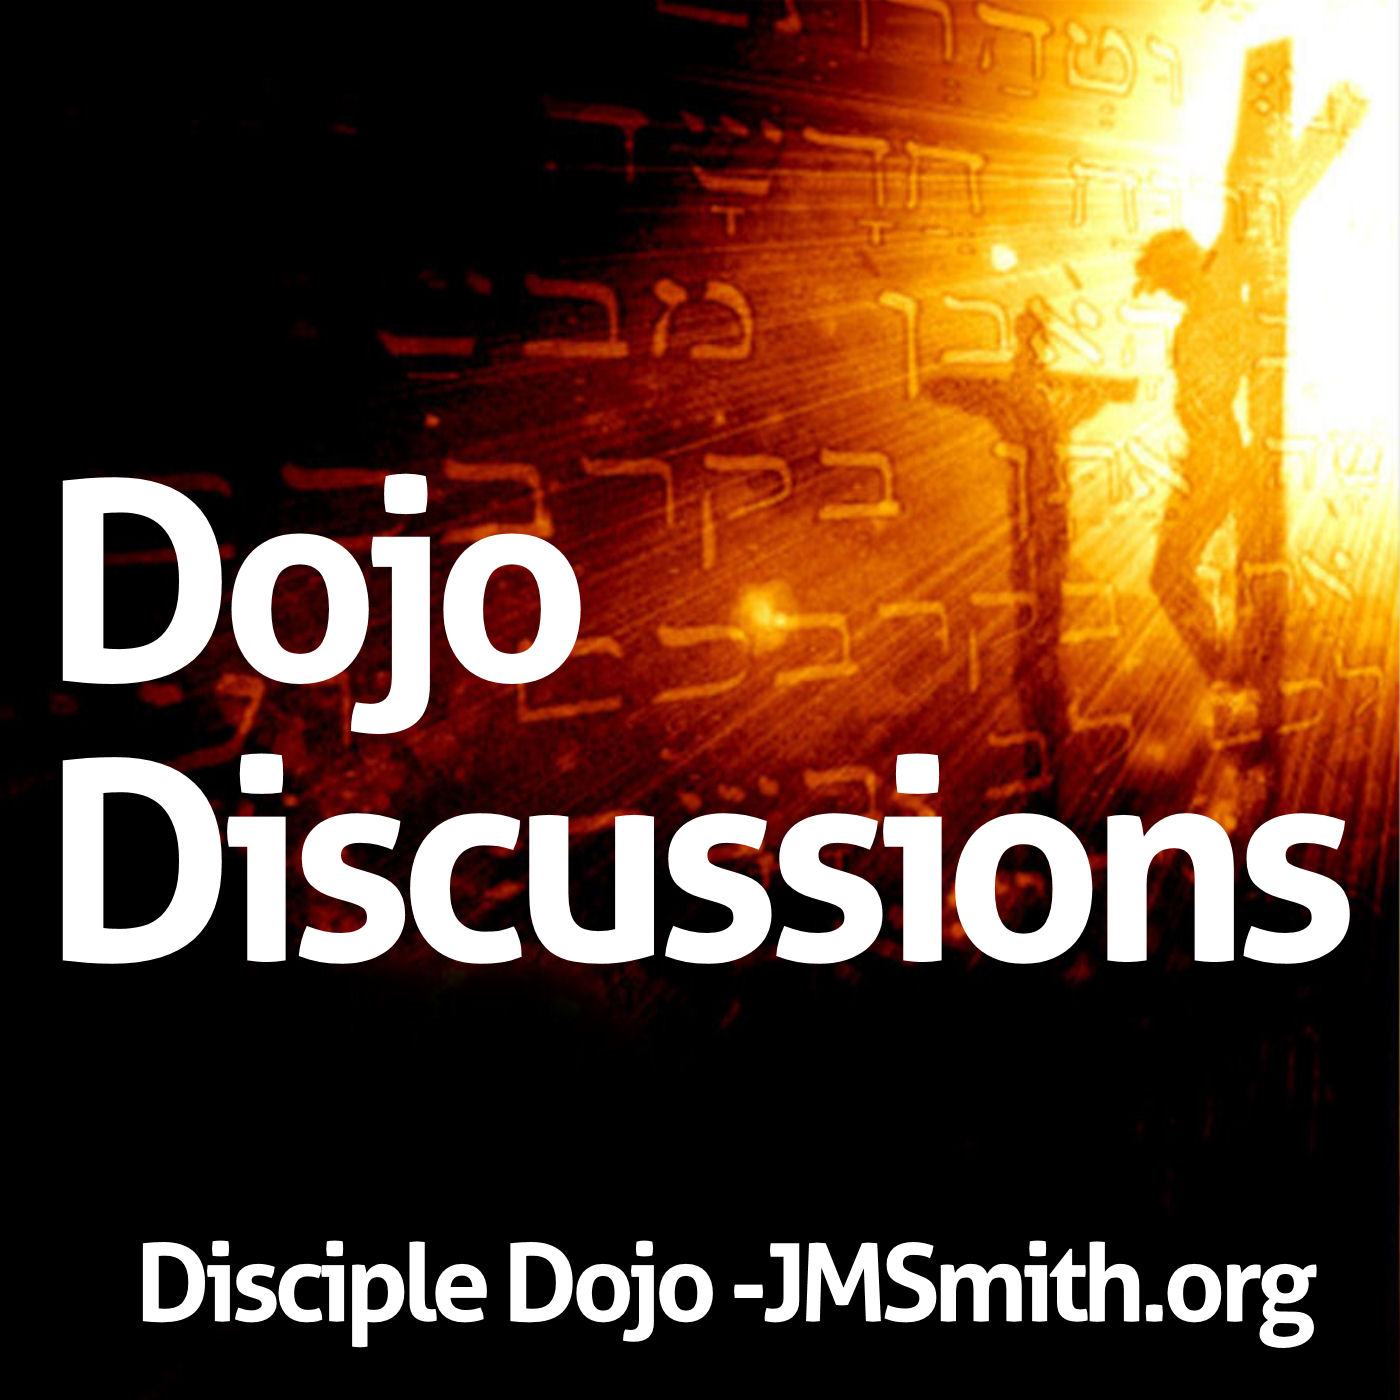 DOJO DISCUSSIONS - CLICK IMAGE FOR AUDIO PLAYLIST